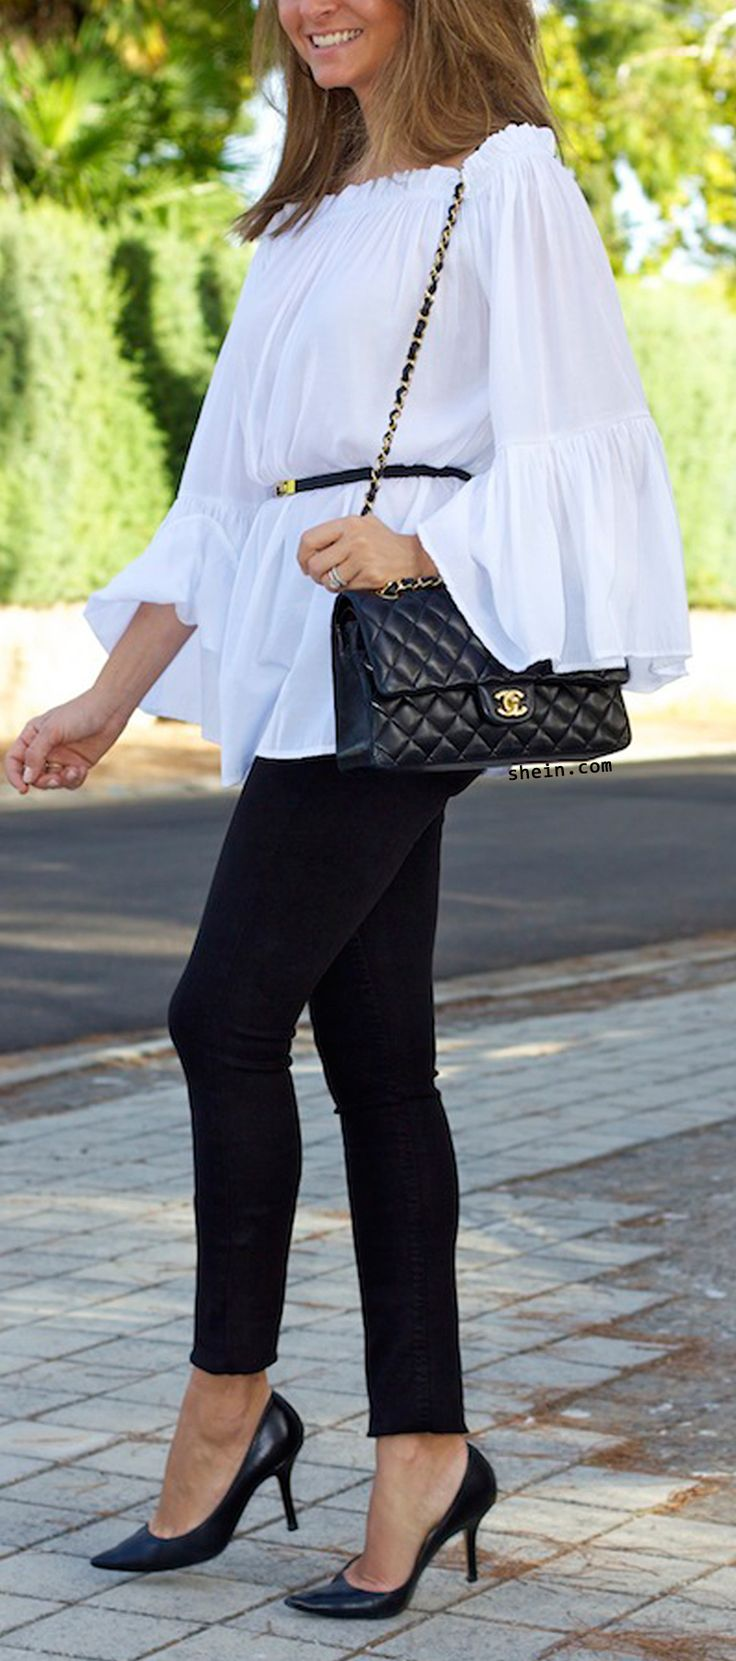 White & black look. Amazing white lace top with black belt.